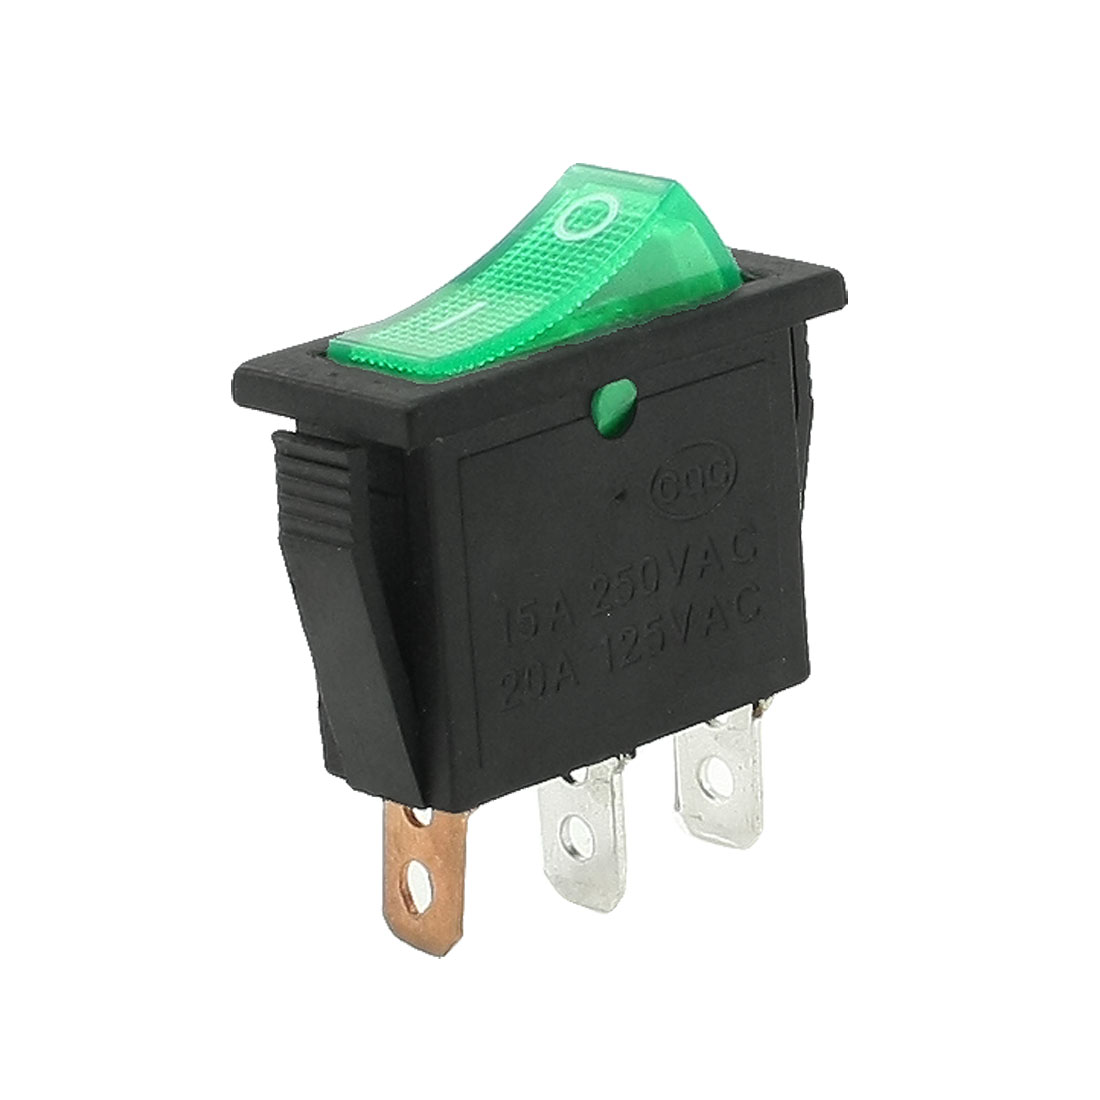 AC 250V/15A 125V/20A 3 Pins SPST I/O Green Light Snap in Boat Rocker Switch